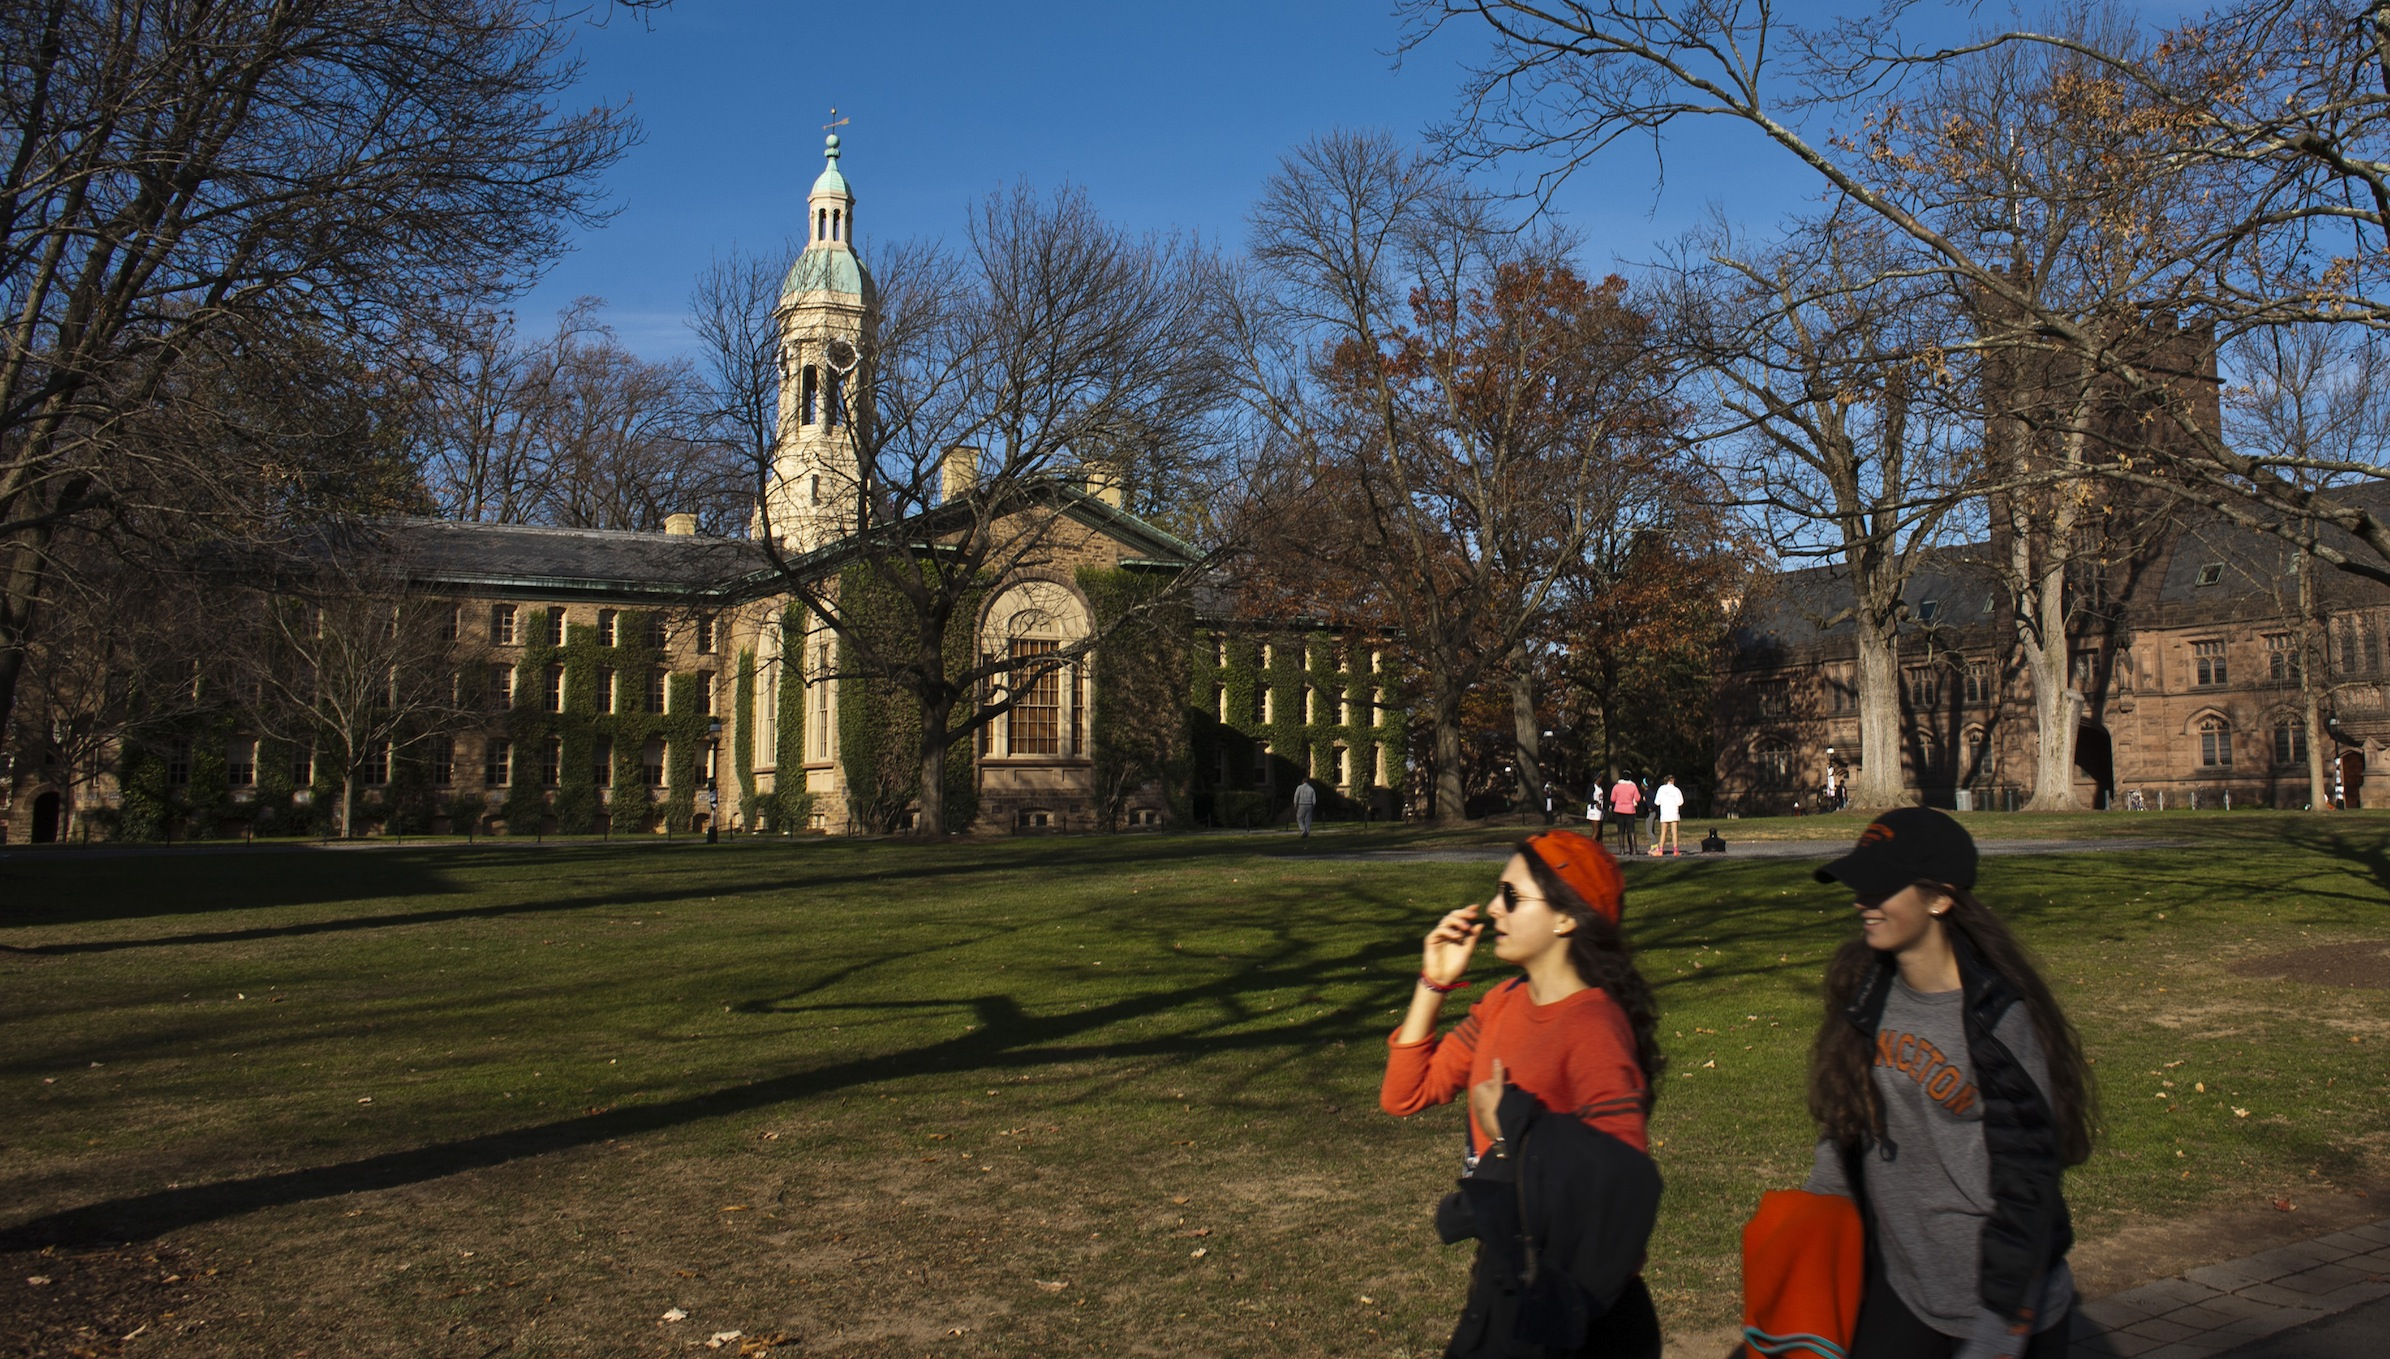 Students walk around the Princeton University campus in New Jersey, November 16, 2013. A meningitis vaccine approved for use in Europe and Australia but not in the United States can be imported to try to stop an outbreak of the disease at Princeton University in New Jersey, federal health officials said. The Food and Drug Administration agreed this week to the importation of the vaccine, Bexsero, for potential use on the Ivy League campus, Barbara Reynolds, a spokeswoman for the Centers for Disease Control and Prevention, said on Saturday. REUTERS/Eduardo Munoz (UNITED STATES - Tags: SOCIETY EDUCATION HEALTH) - RTX15GEI